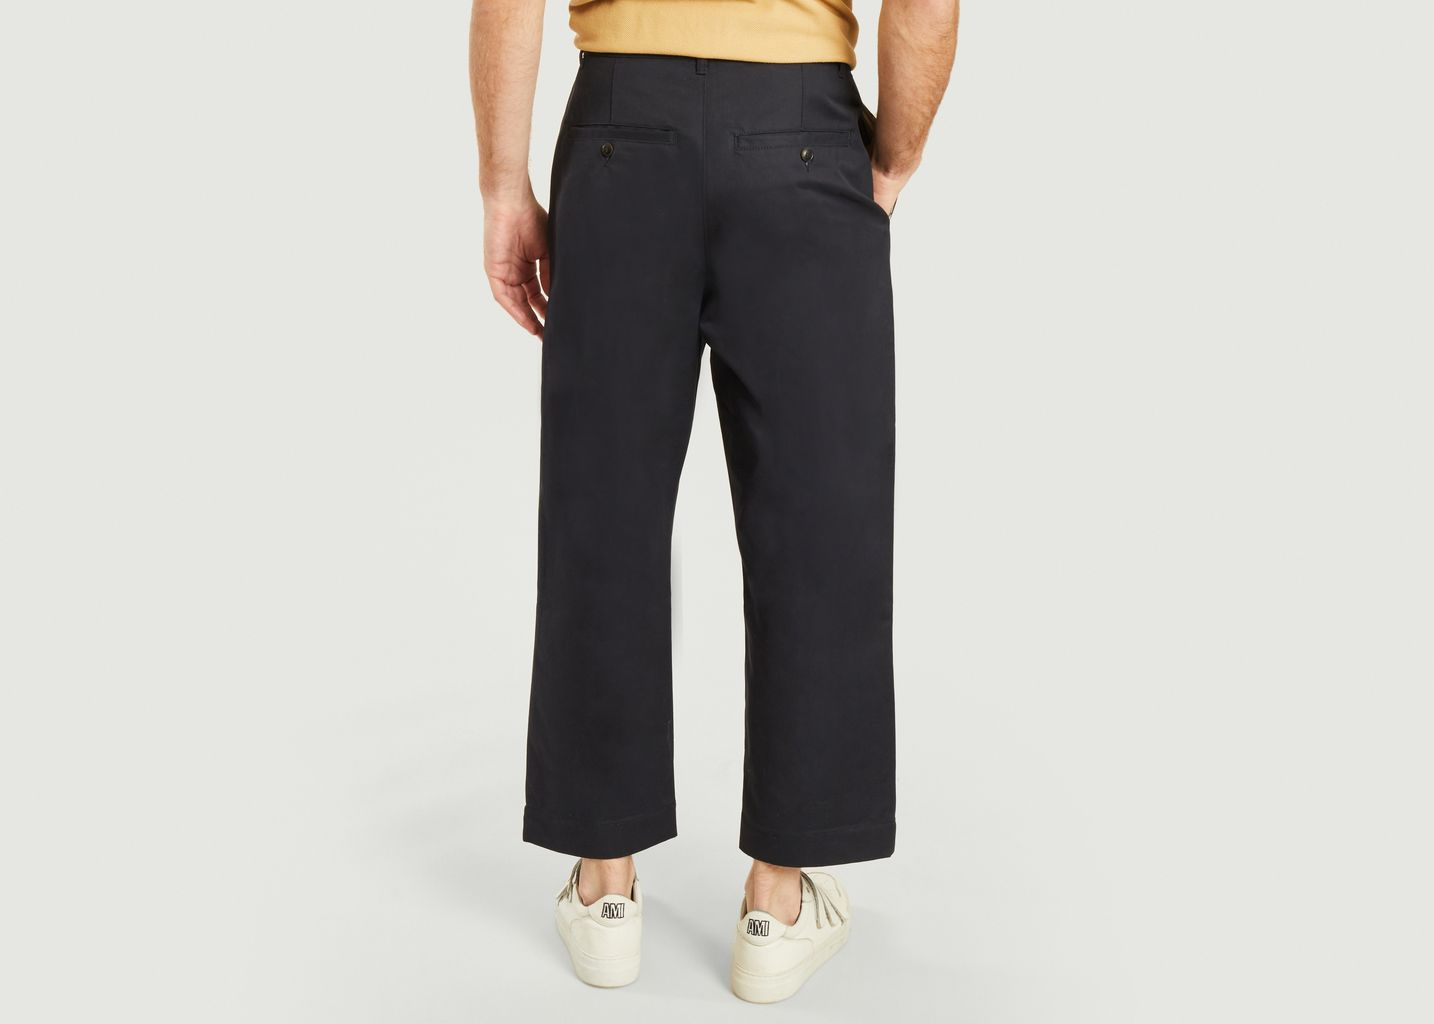 Pantalon double plis - Outland